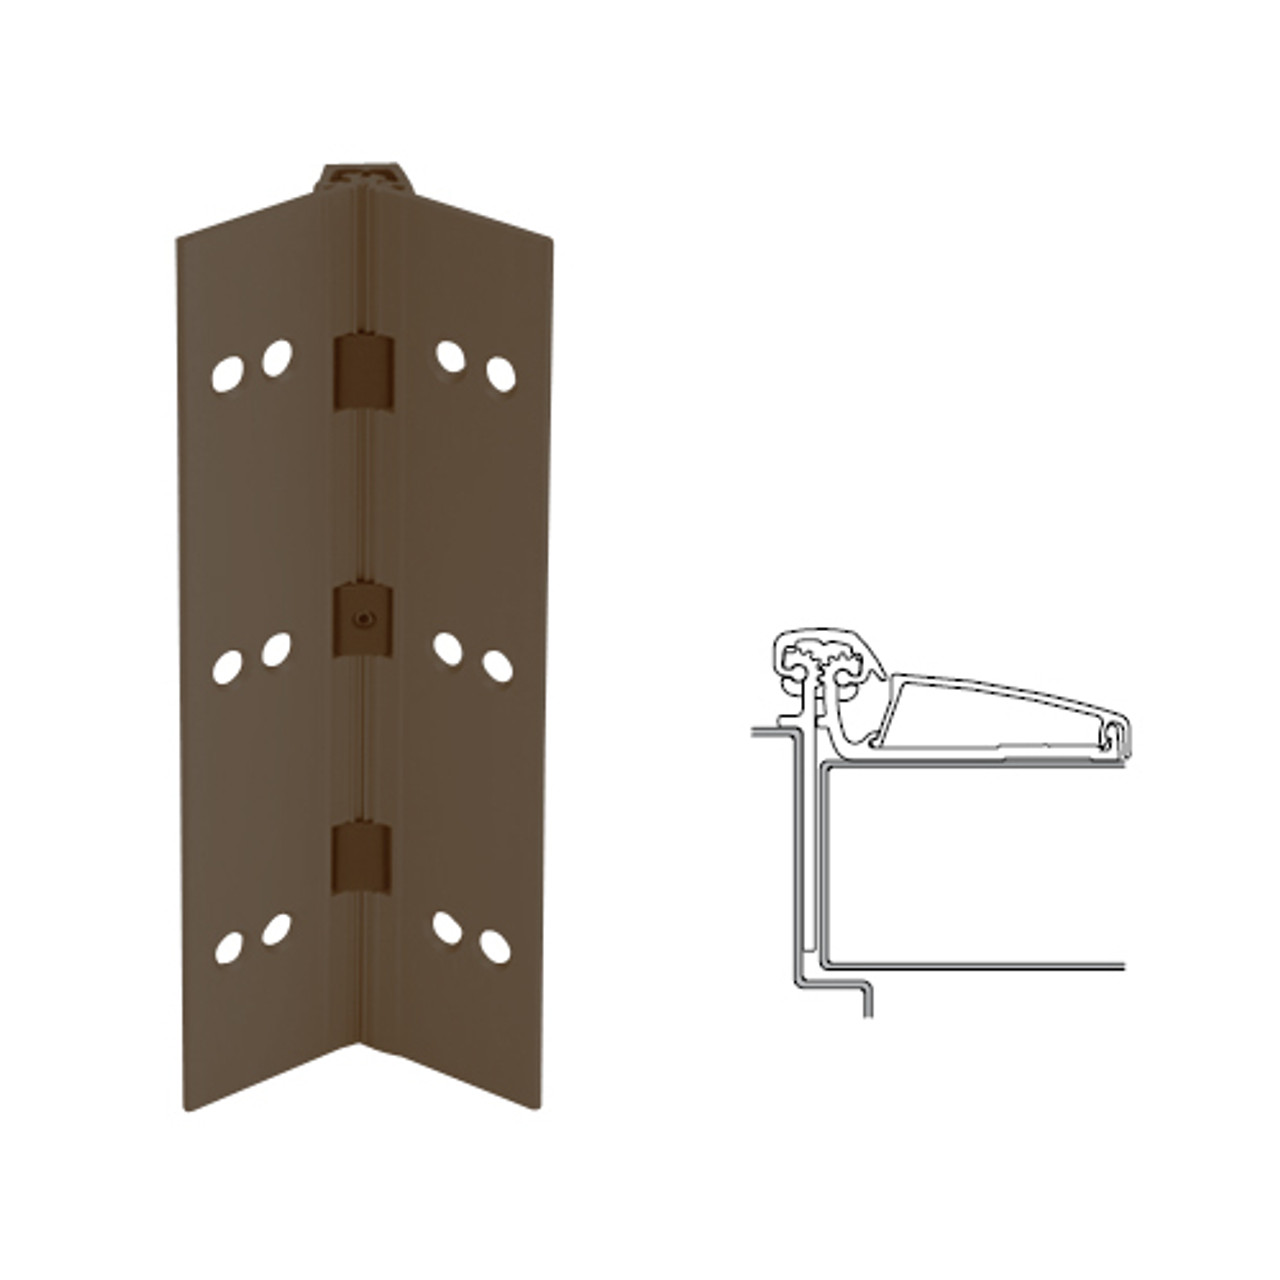 046XY-313AN-83-TEKWD IVES Adjustable Half Surface Continuous Geared Hinges with Wood Screws in Dark Bronze Anodized